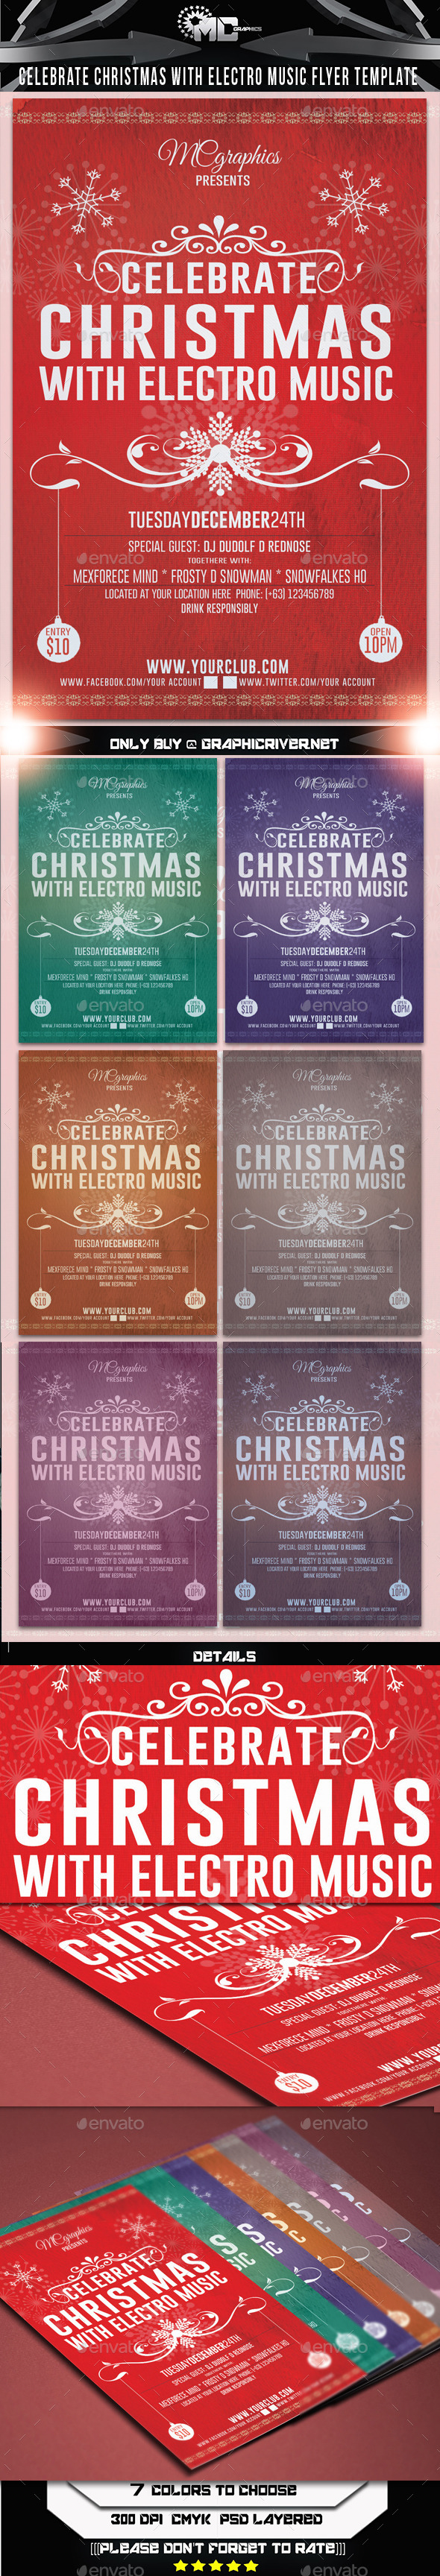 Celebrate Christmas Electro Music Flyer - Events Flyers